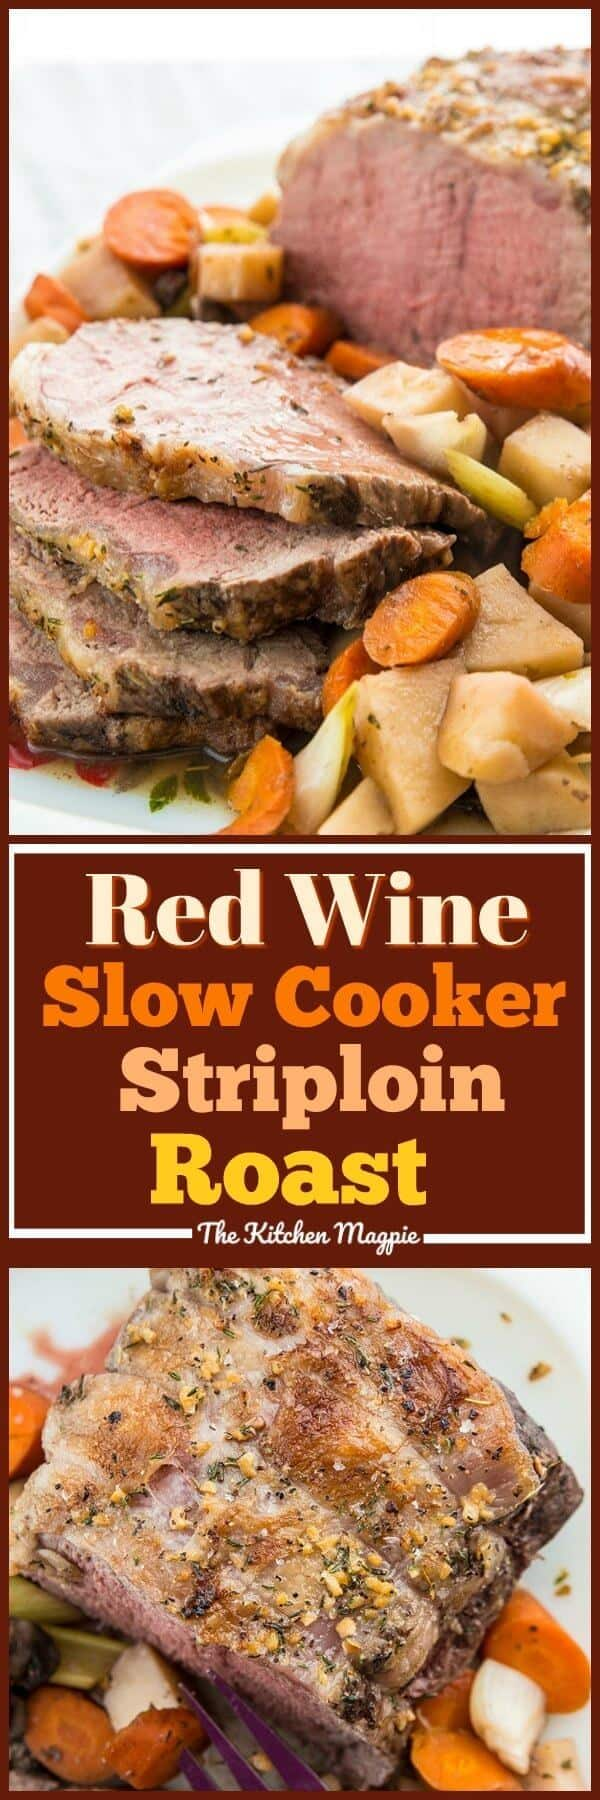 This slow cooker red wine striploin roast beef uses the best of both worlds to cook it! Slow cooking in a red wine sauce then searing the moisture inside with a quick broil in the oven at the end makes for a a delicious and tender striploin roast.